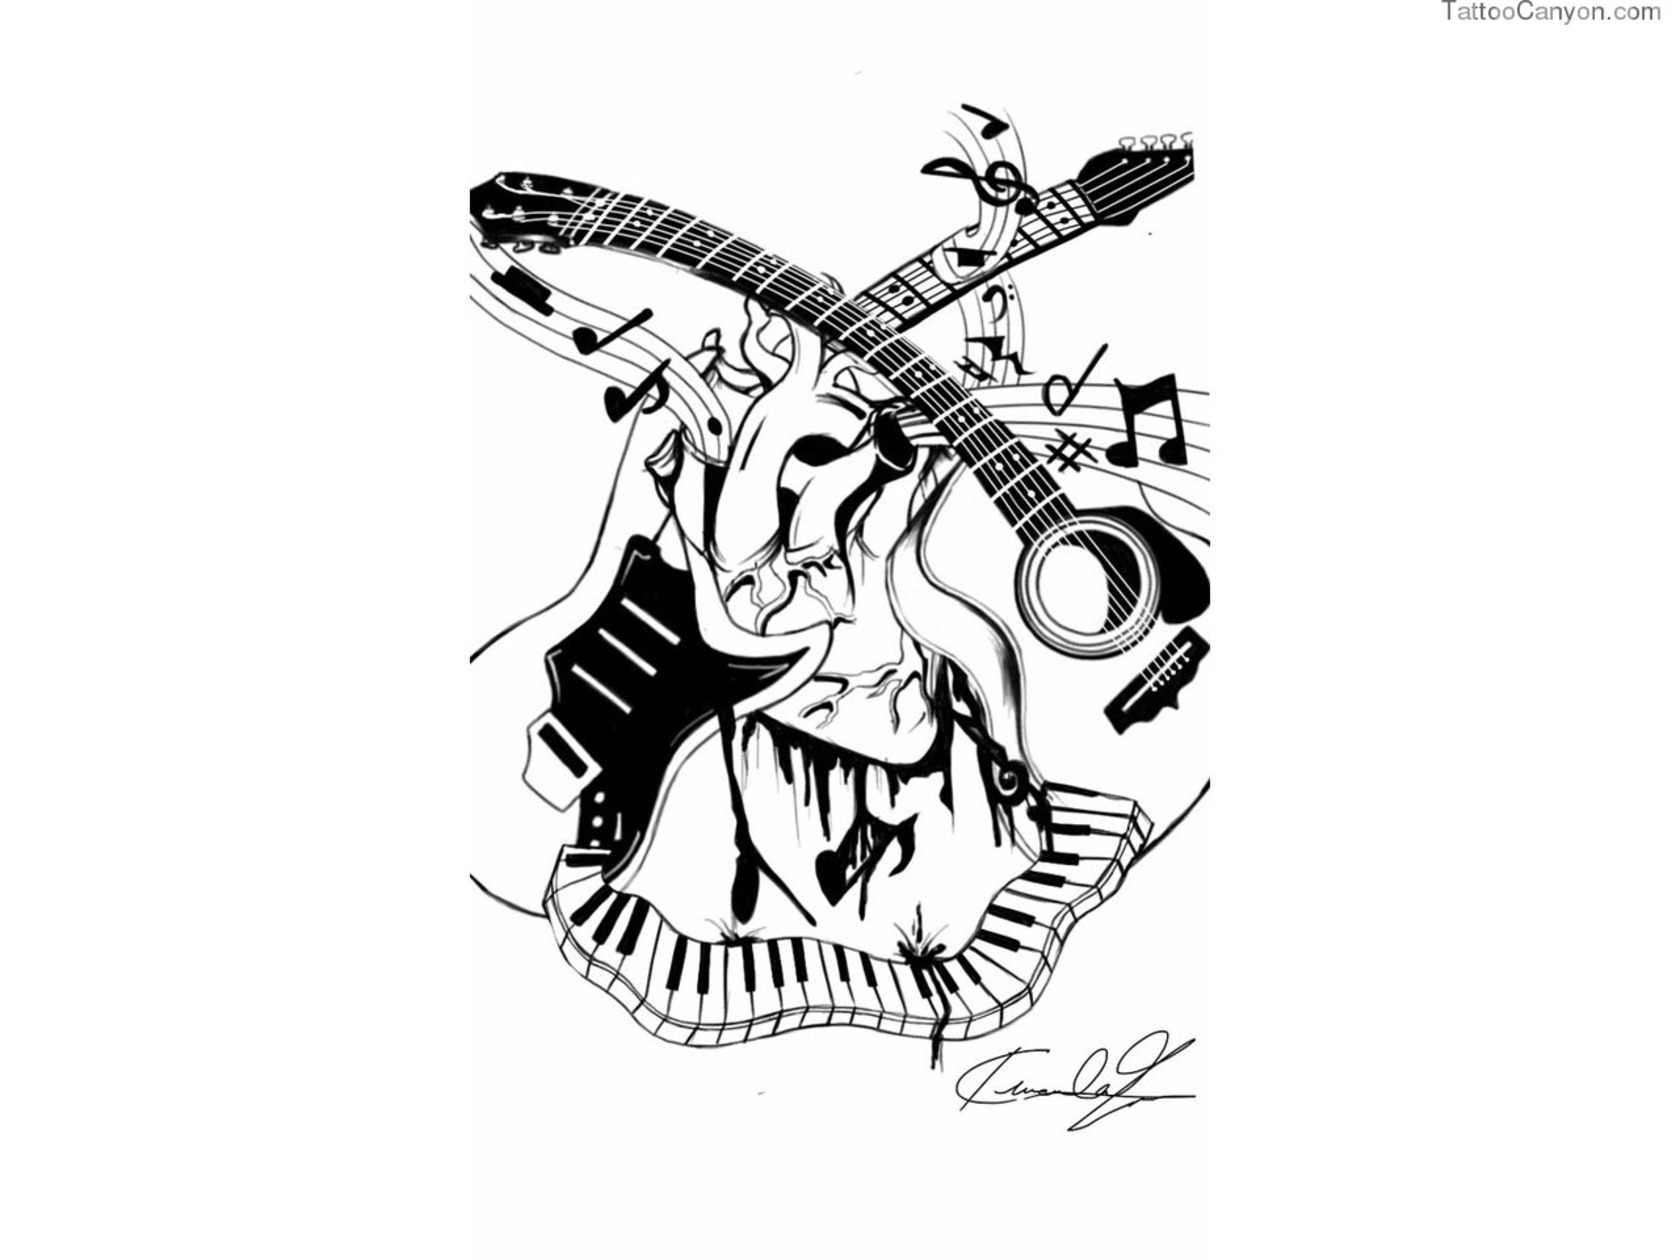 Drawn music notes paper Tattoo Music For Tattoo 18